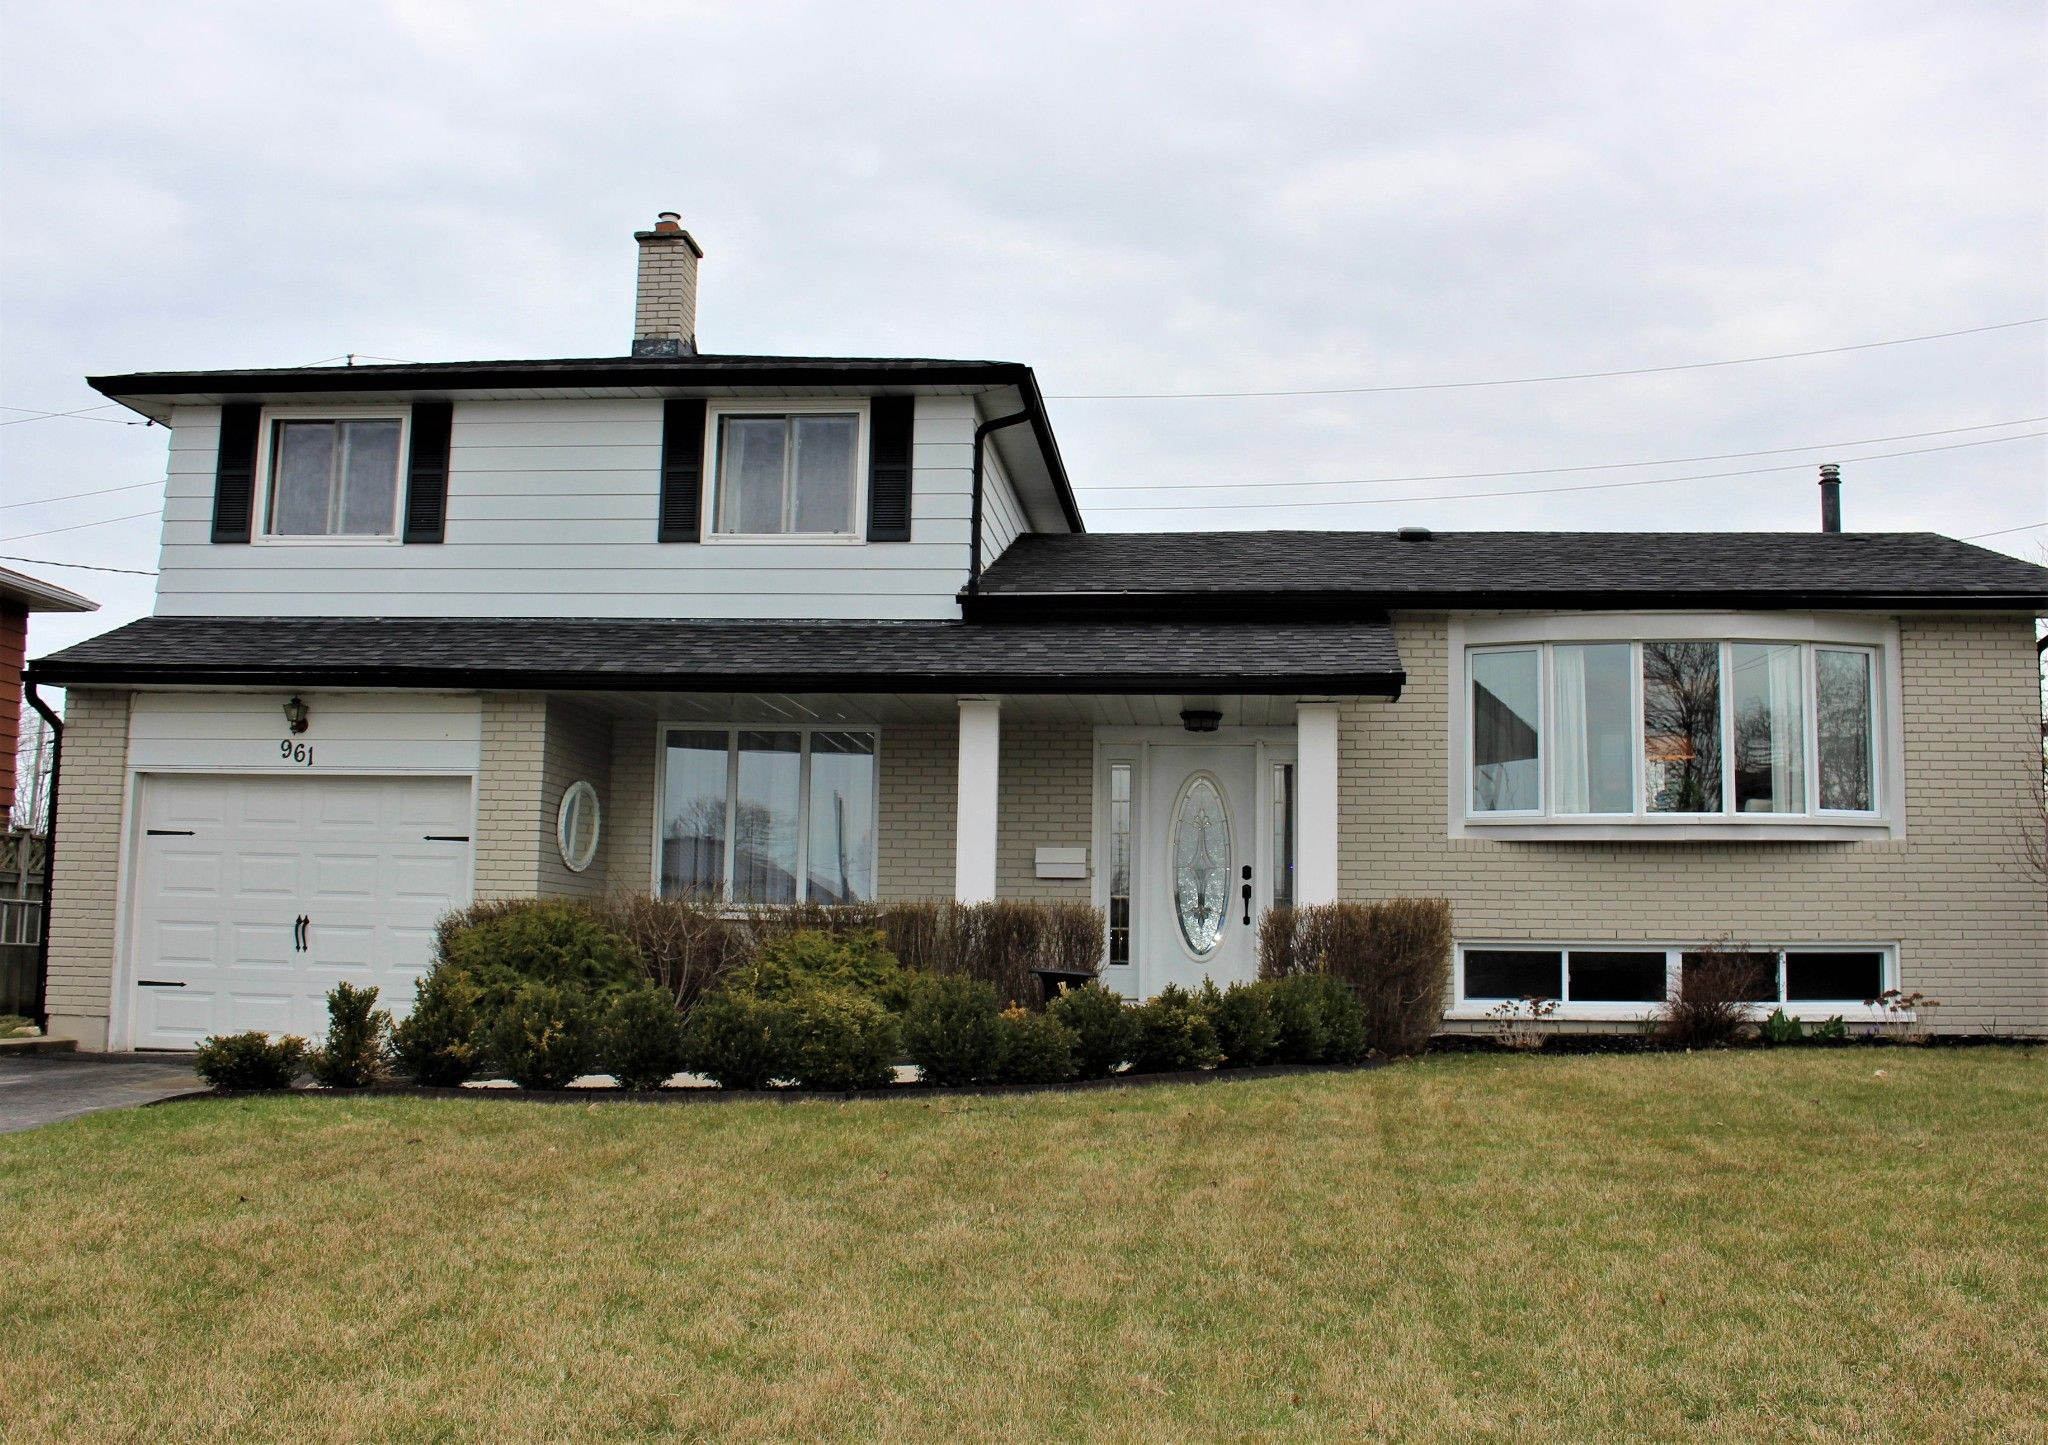 Main Photo: 961 Curtis Crescent in Cobourg: House for sale : MLS®# 188908